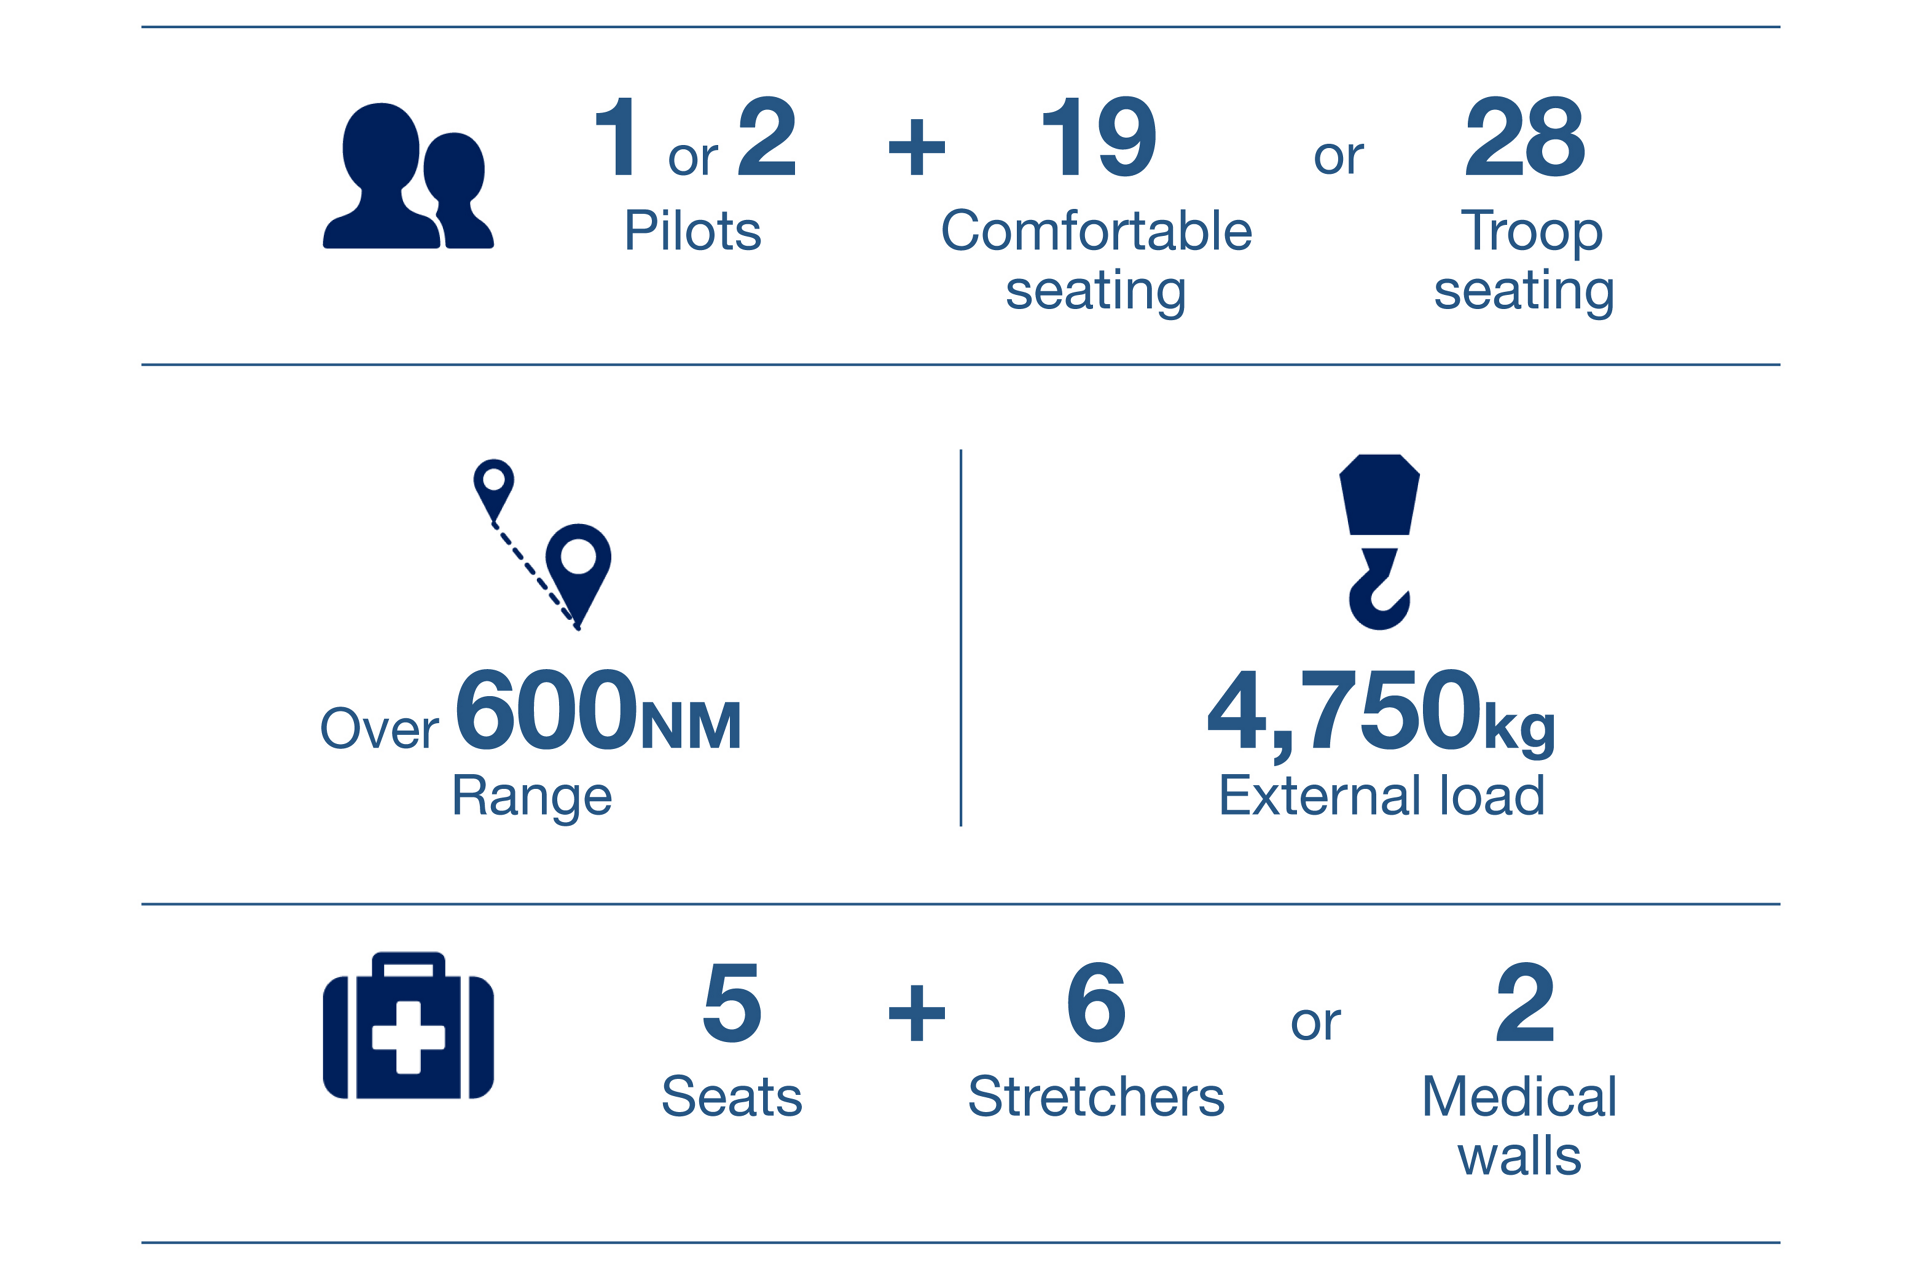 An infographic showing key performance metrics and capabilities for Airbus' H225 helicopter.